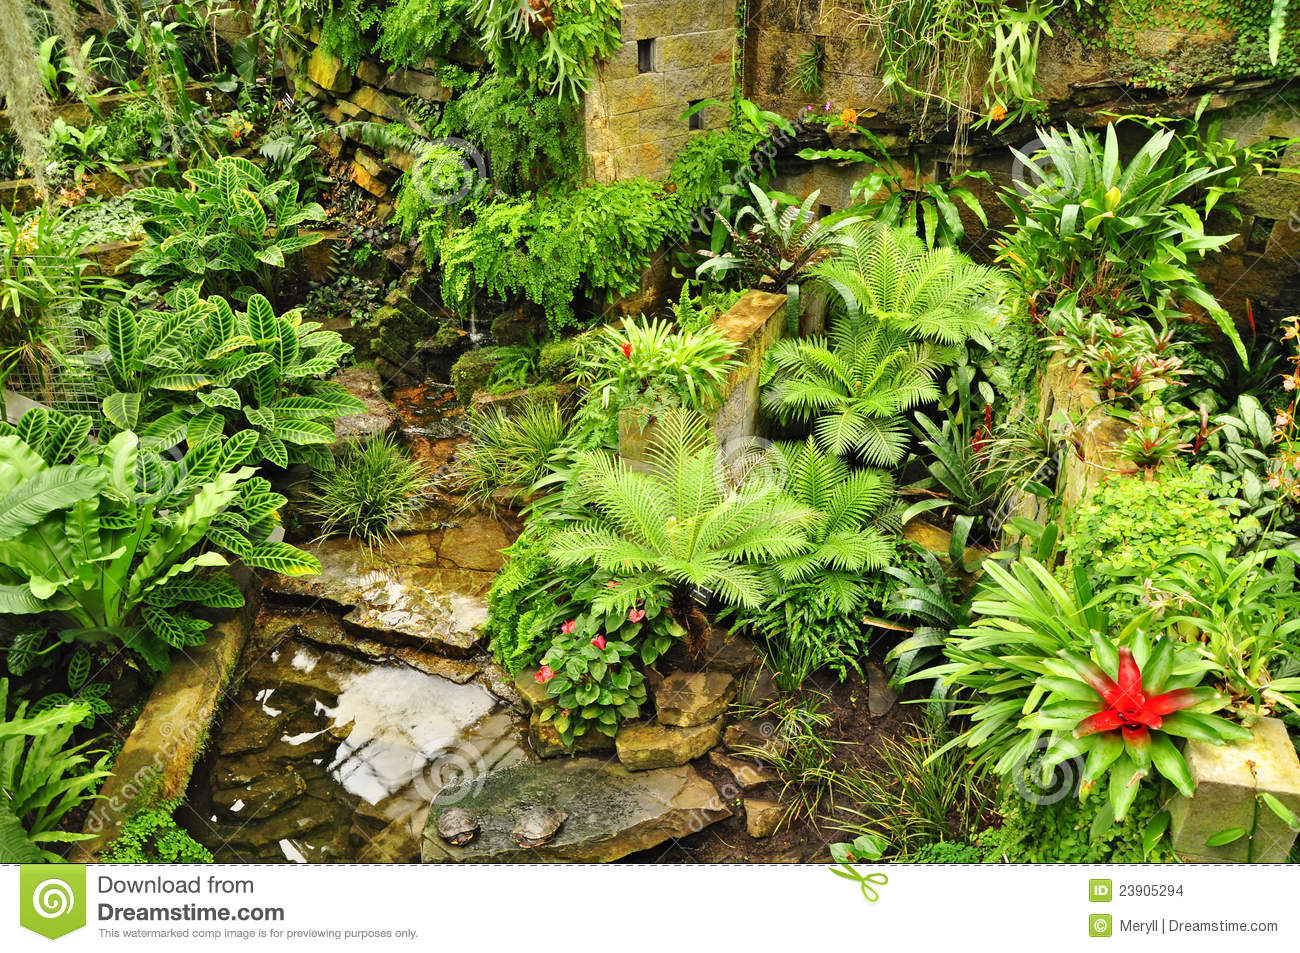 Tropical Garden Green Plants Stock Images - Image: 23905294